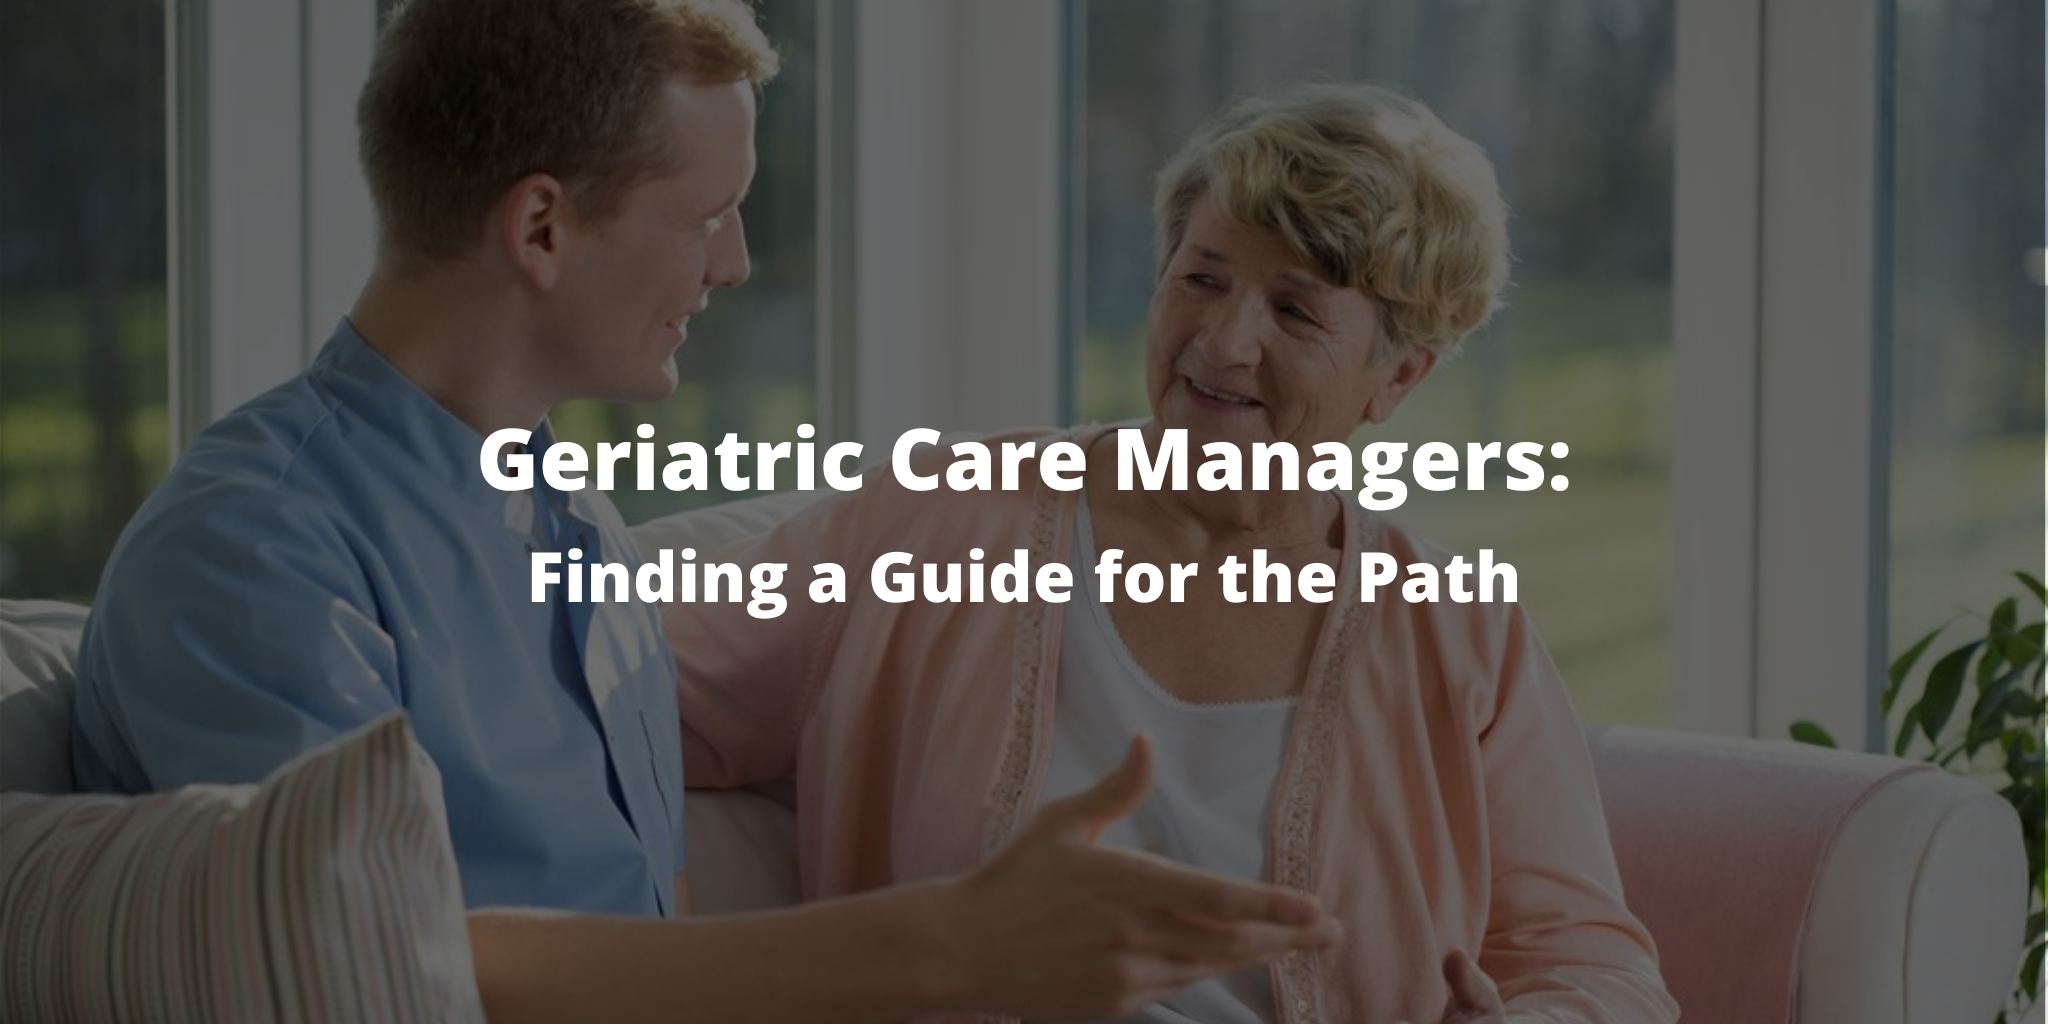 Geriatric Care Managers: Finding a Guide for the Path